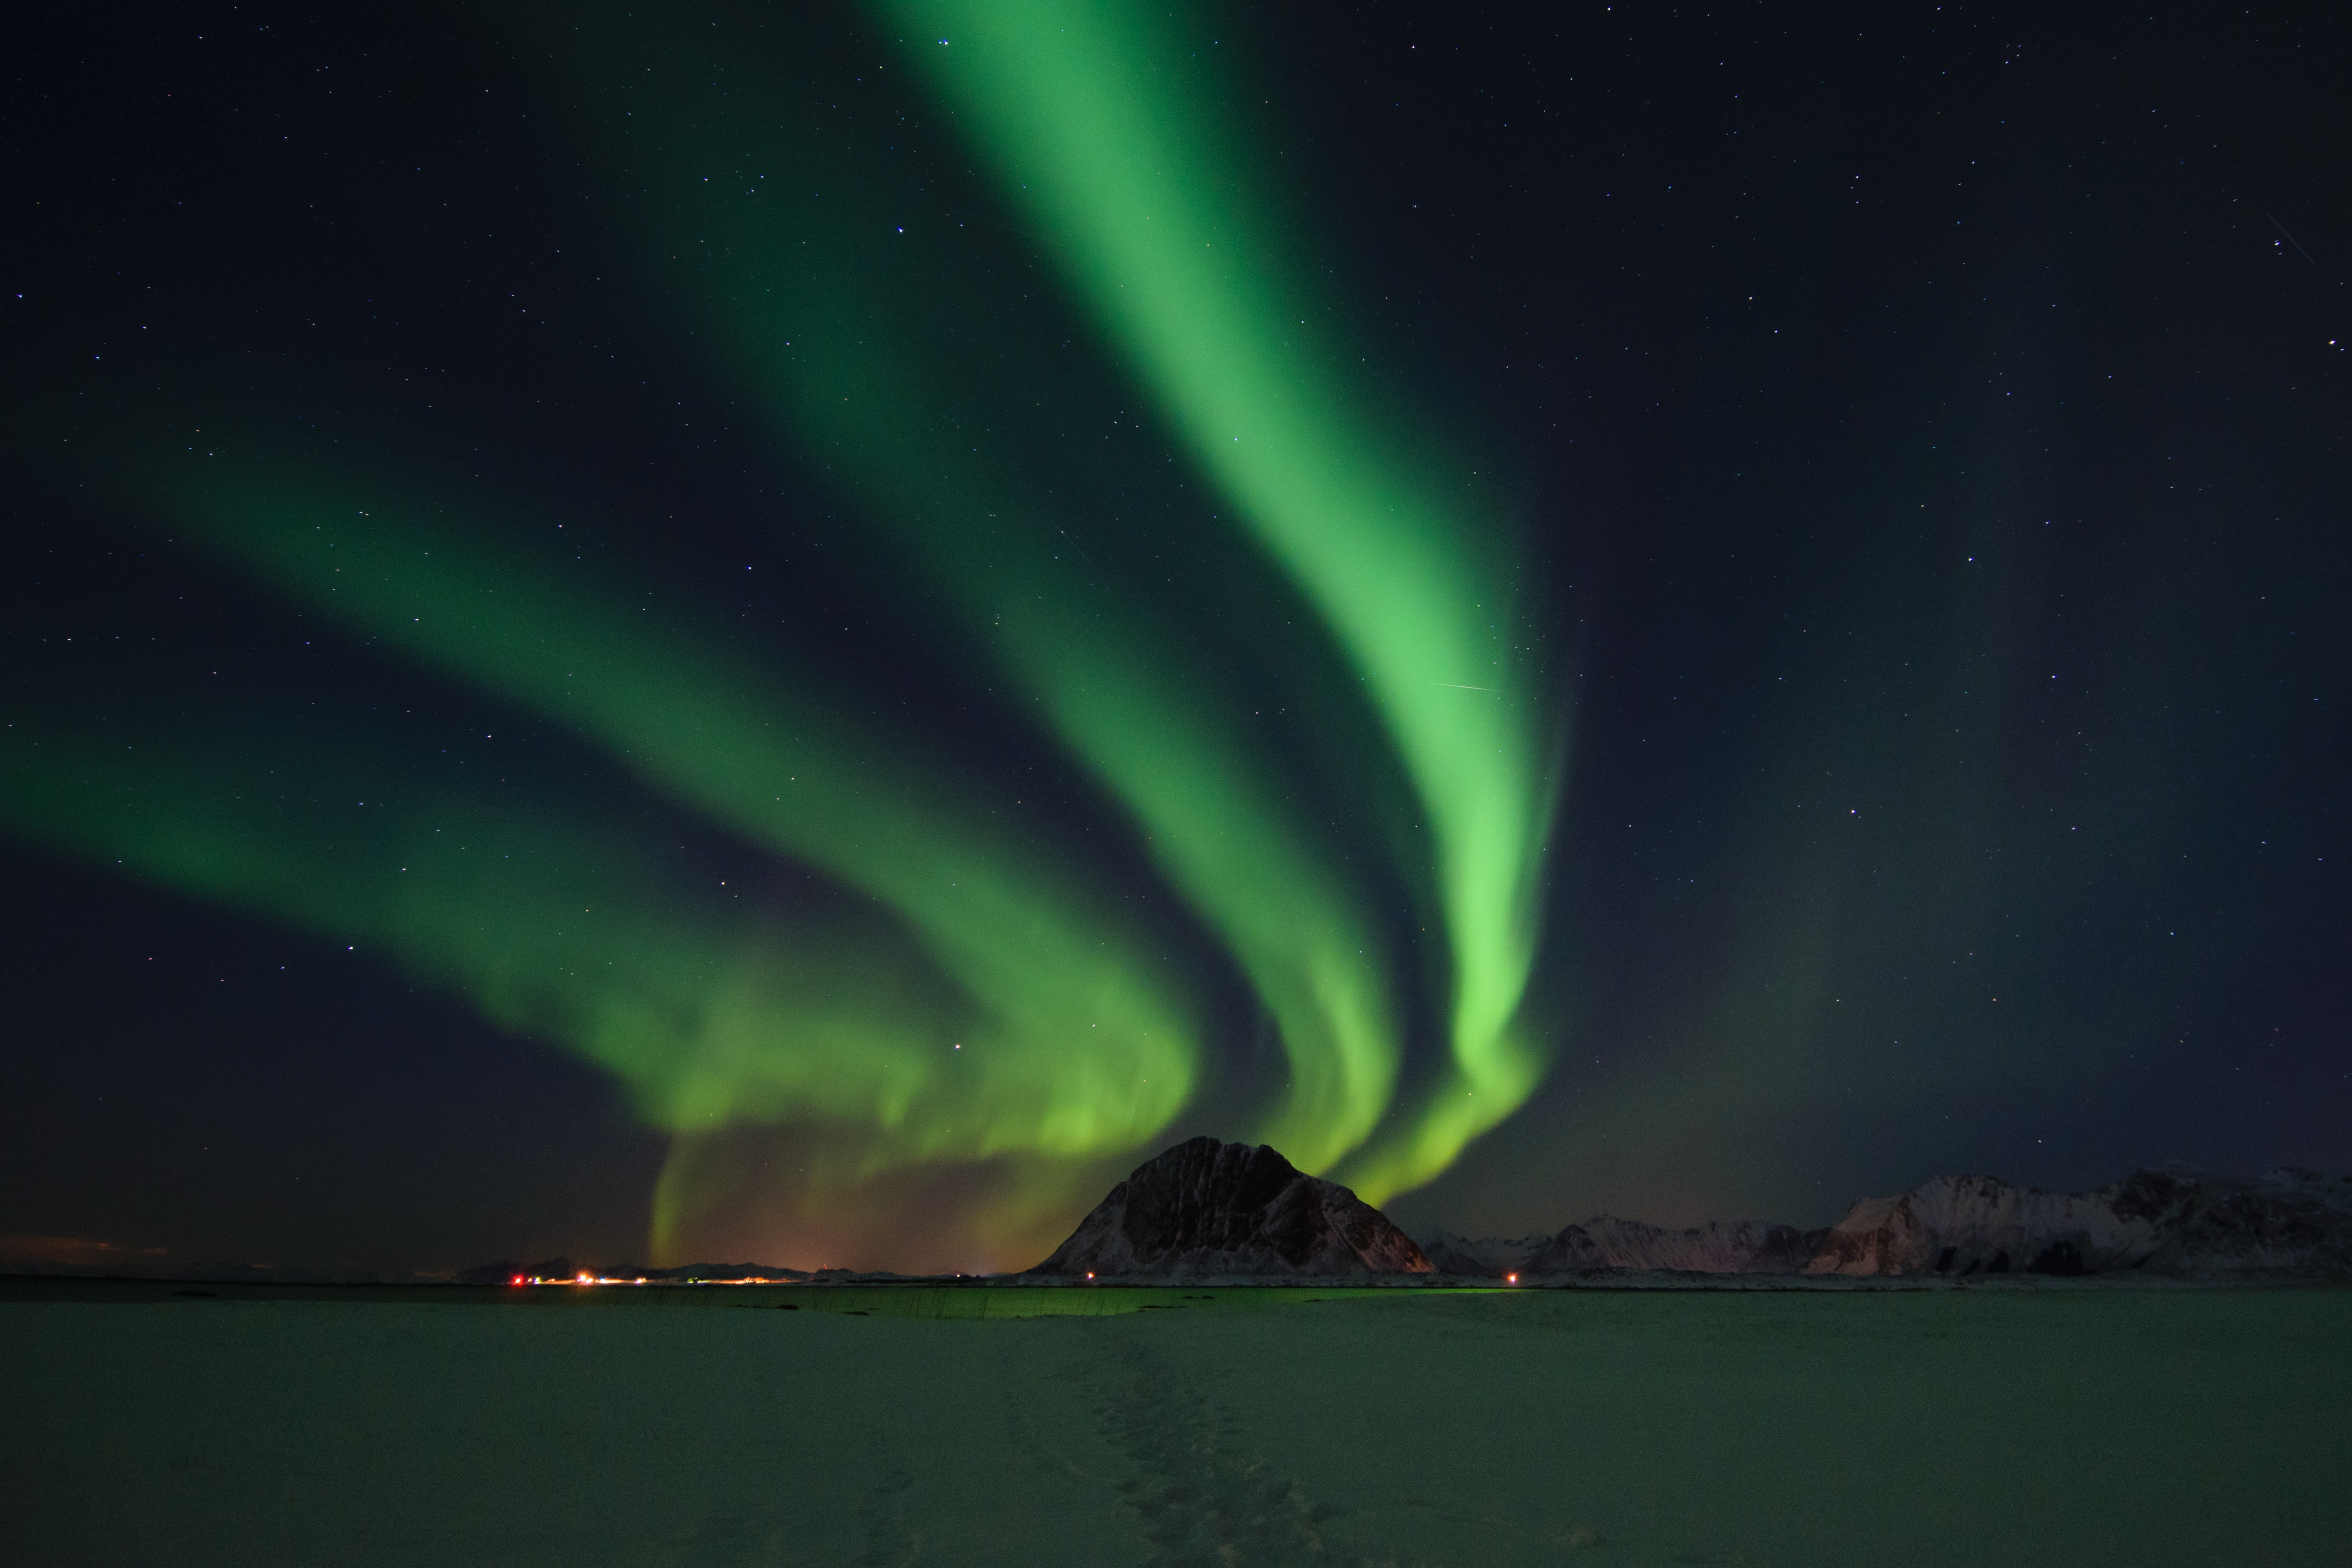 time lapse photography of Northern Lights